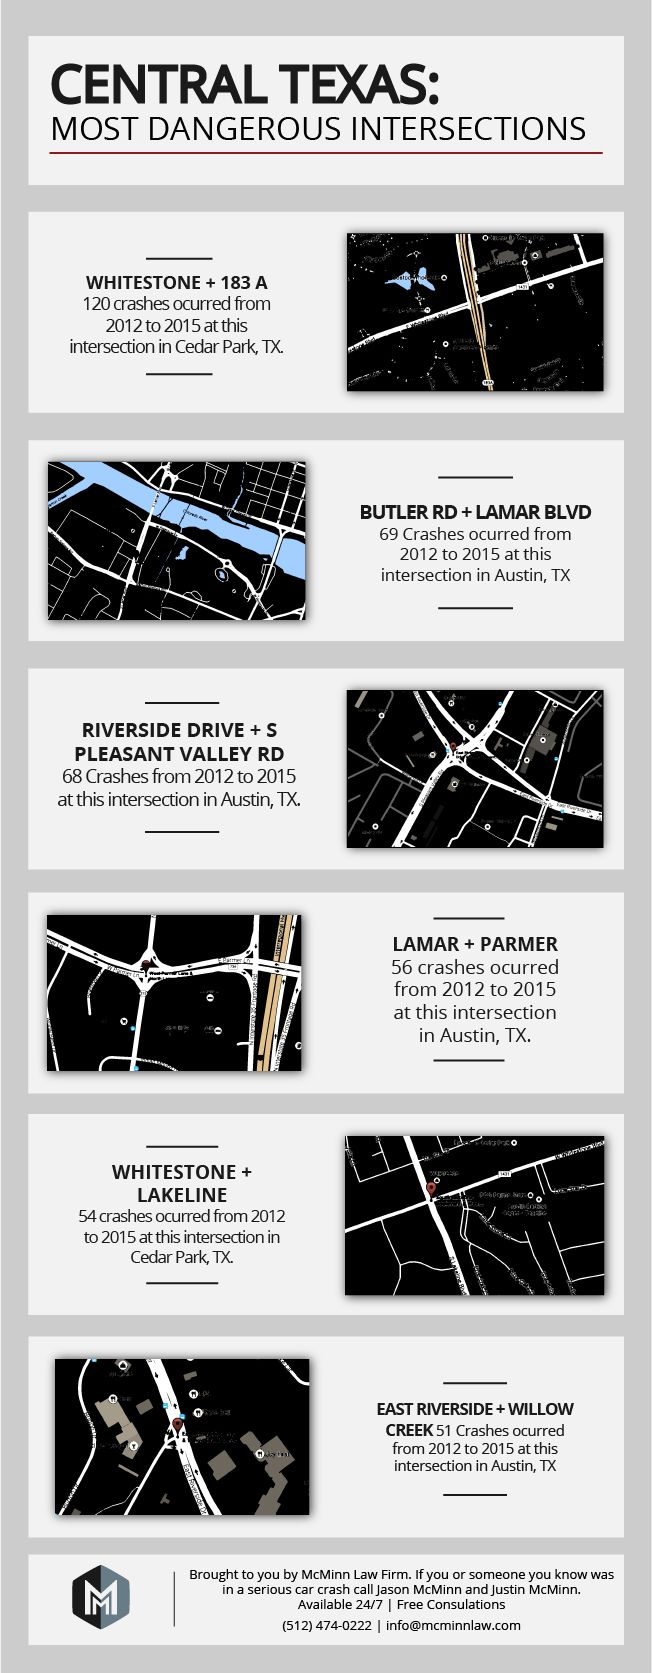 Car accidents put austin on the map in this evaluation of the most dangerous intersections in texas